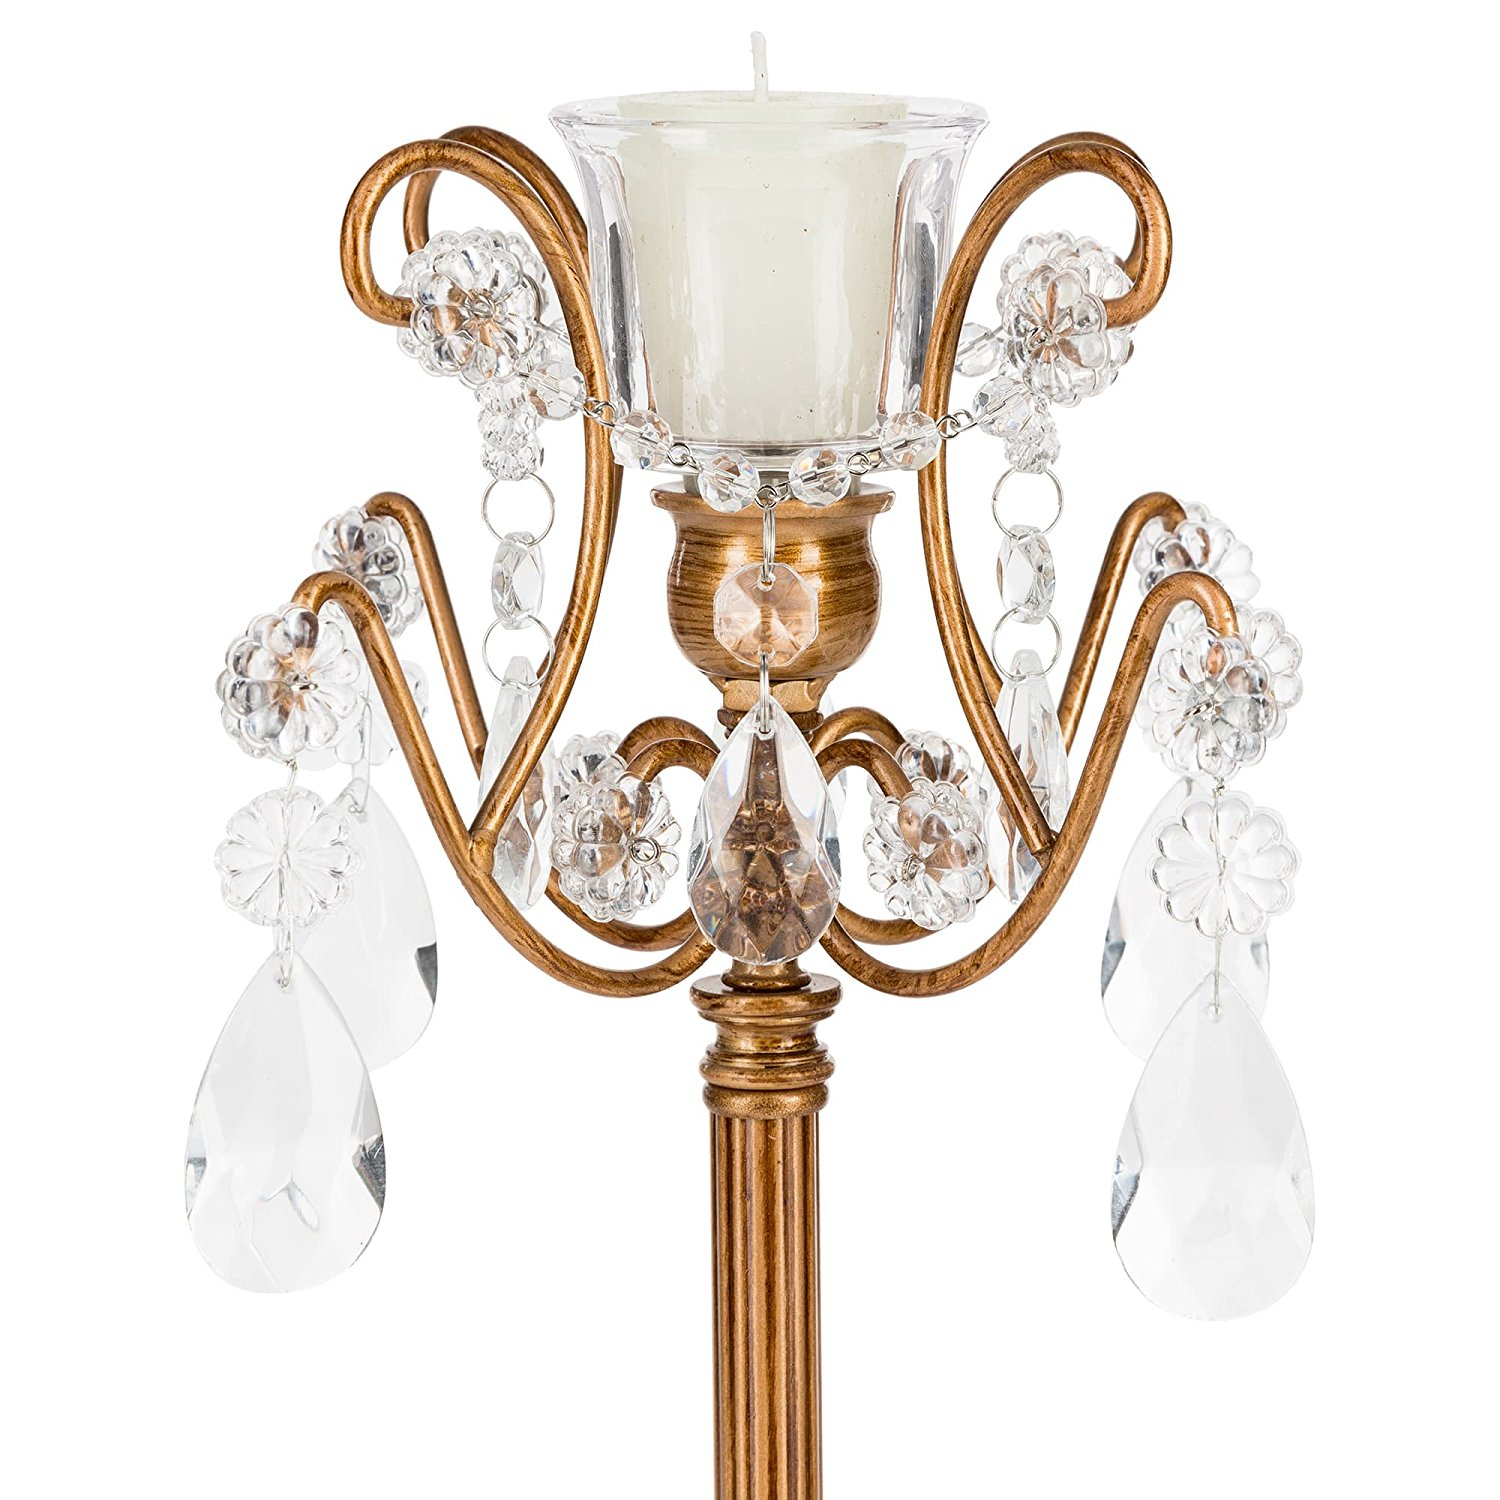 Candelabra with Glass Crystals, Wedding Centerpiece Home Decoration Tea Light and Taper Candle (Gold)